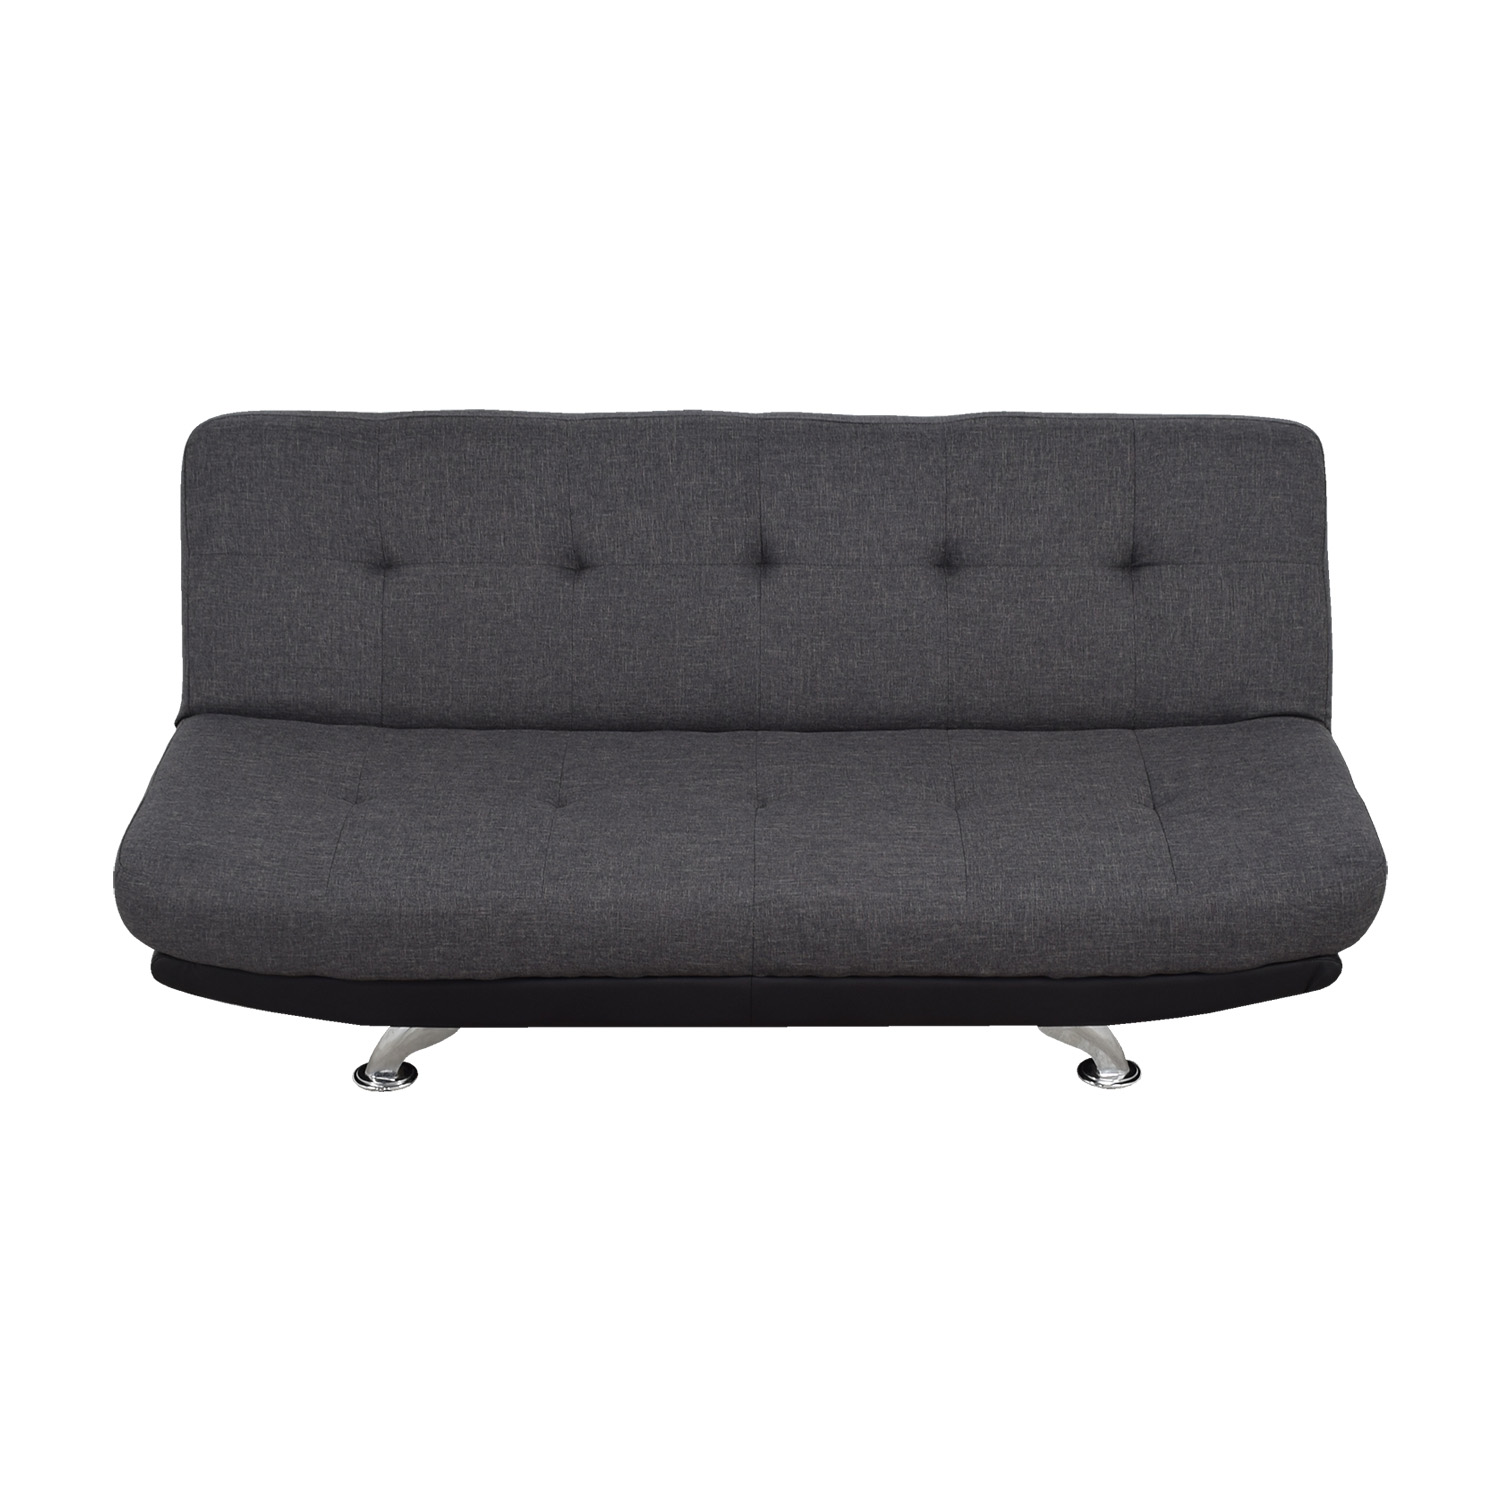 DHP DHP Skyline Charcoal Futon Sofa nyc